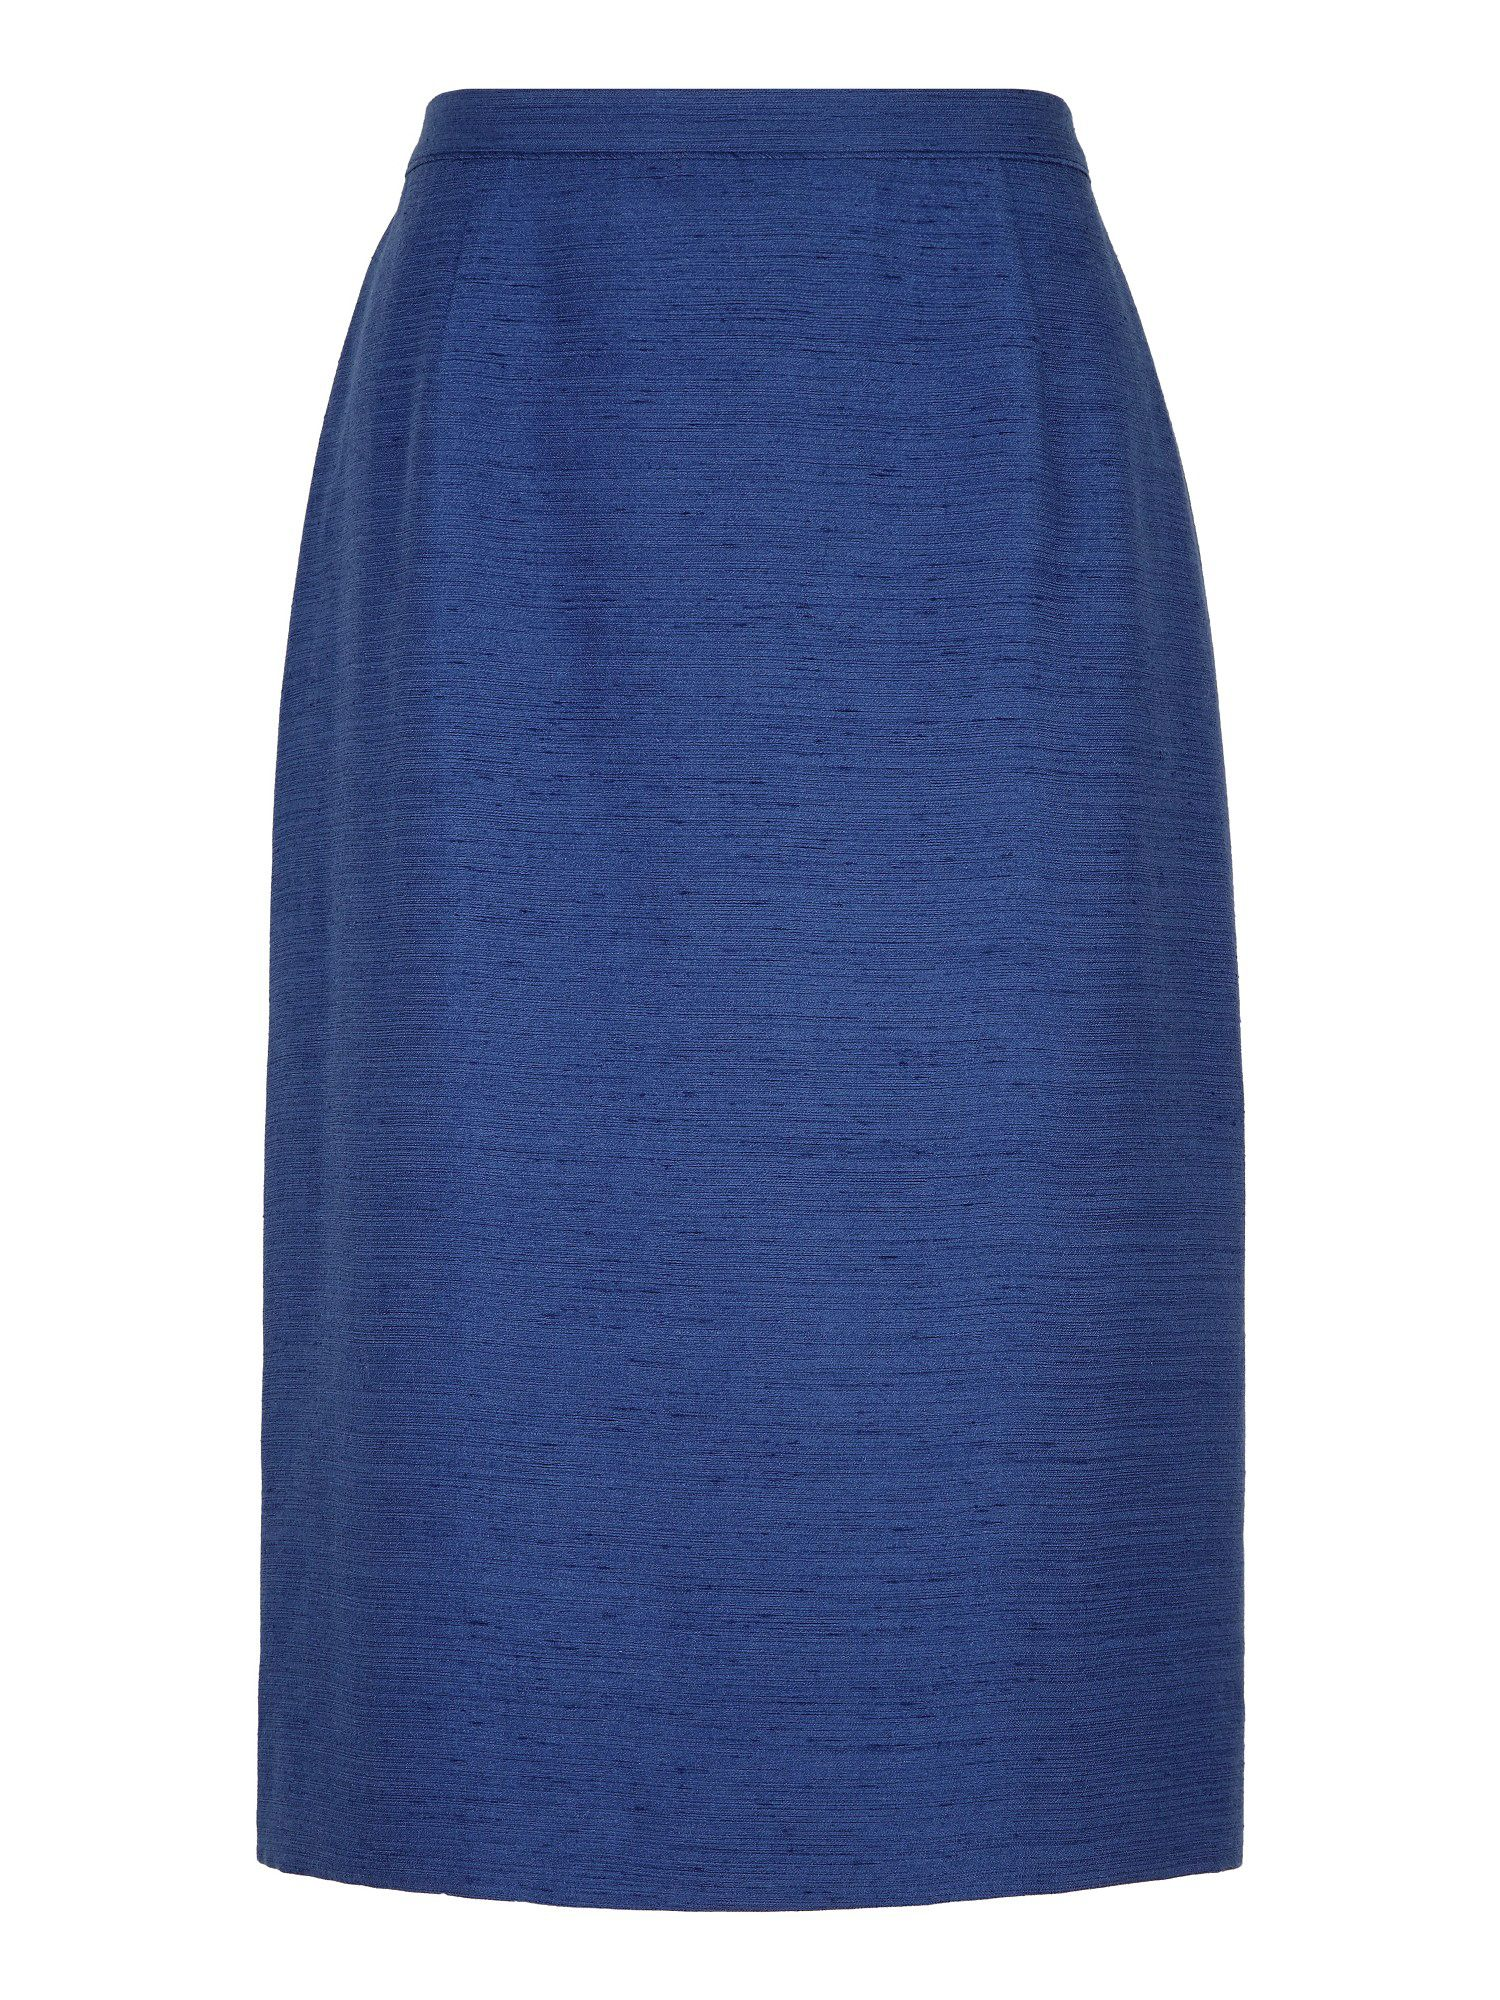 French navy skirt